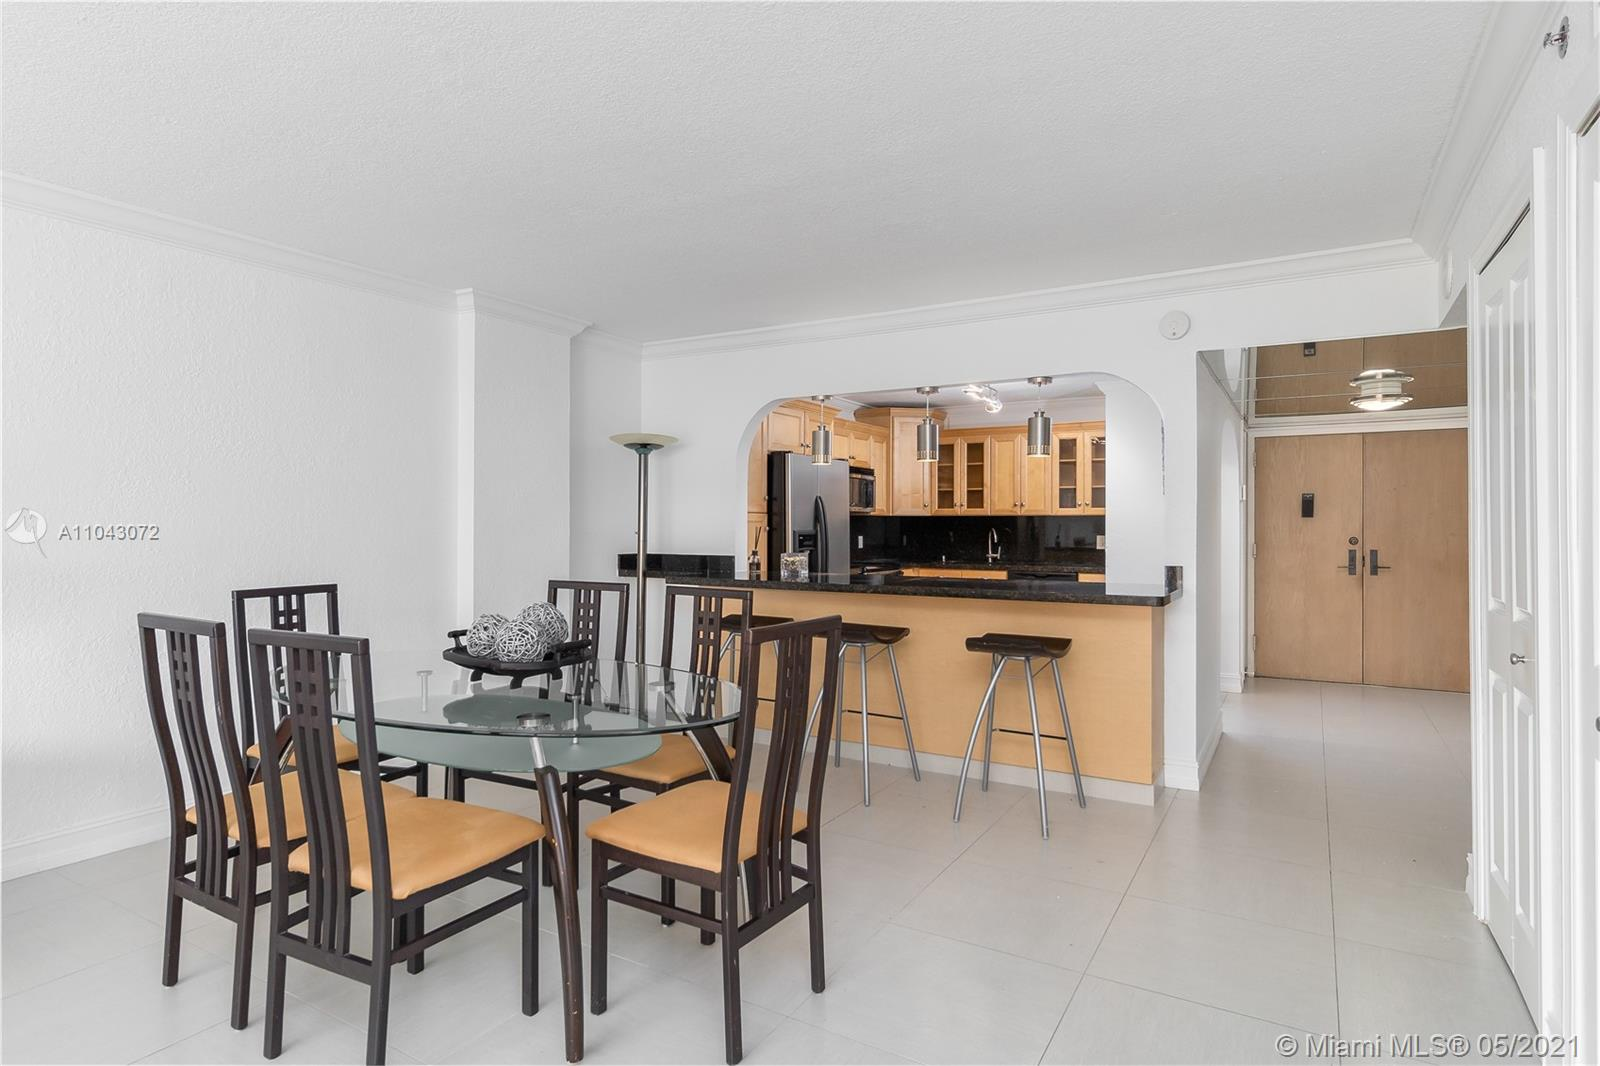 SPACIOUS UNIT IN DESIRABLE SURFSIDE WITH  LARGE BALCONY IN A  OCEANFRONT BOUTIQUE BUILDING. CTN IS IDEALLY LOCATED WALKING DISTANCE TO THE RENOWNED BAL HARBOUR SHOPS.  BUILDING HAS 24 HRS SECURITY, IS 1200 SQ FT.UNIT IS 1 BEDROOM  WITH 2 BATHS WAS CONVERTED INTO A 2 BEDROOM, 2 BATHS  . UNIT IS REMODELED  WITH OPEN KITCHEN , STAINLESS STEEL APPLIANCES, MODERN FIXTURES & PORCELAIN FLOORS.  HEATED POOL, FITNESS CENTER, BARBECUE AREA ,SAUNA  & PARTY ROOM. PARKING #48